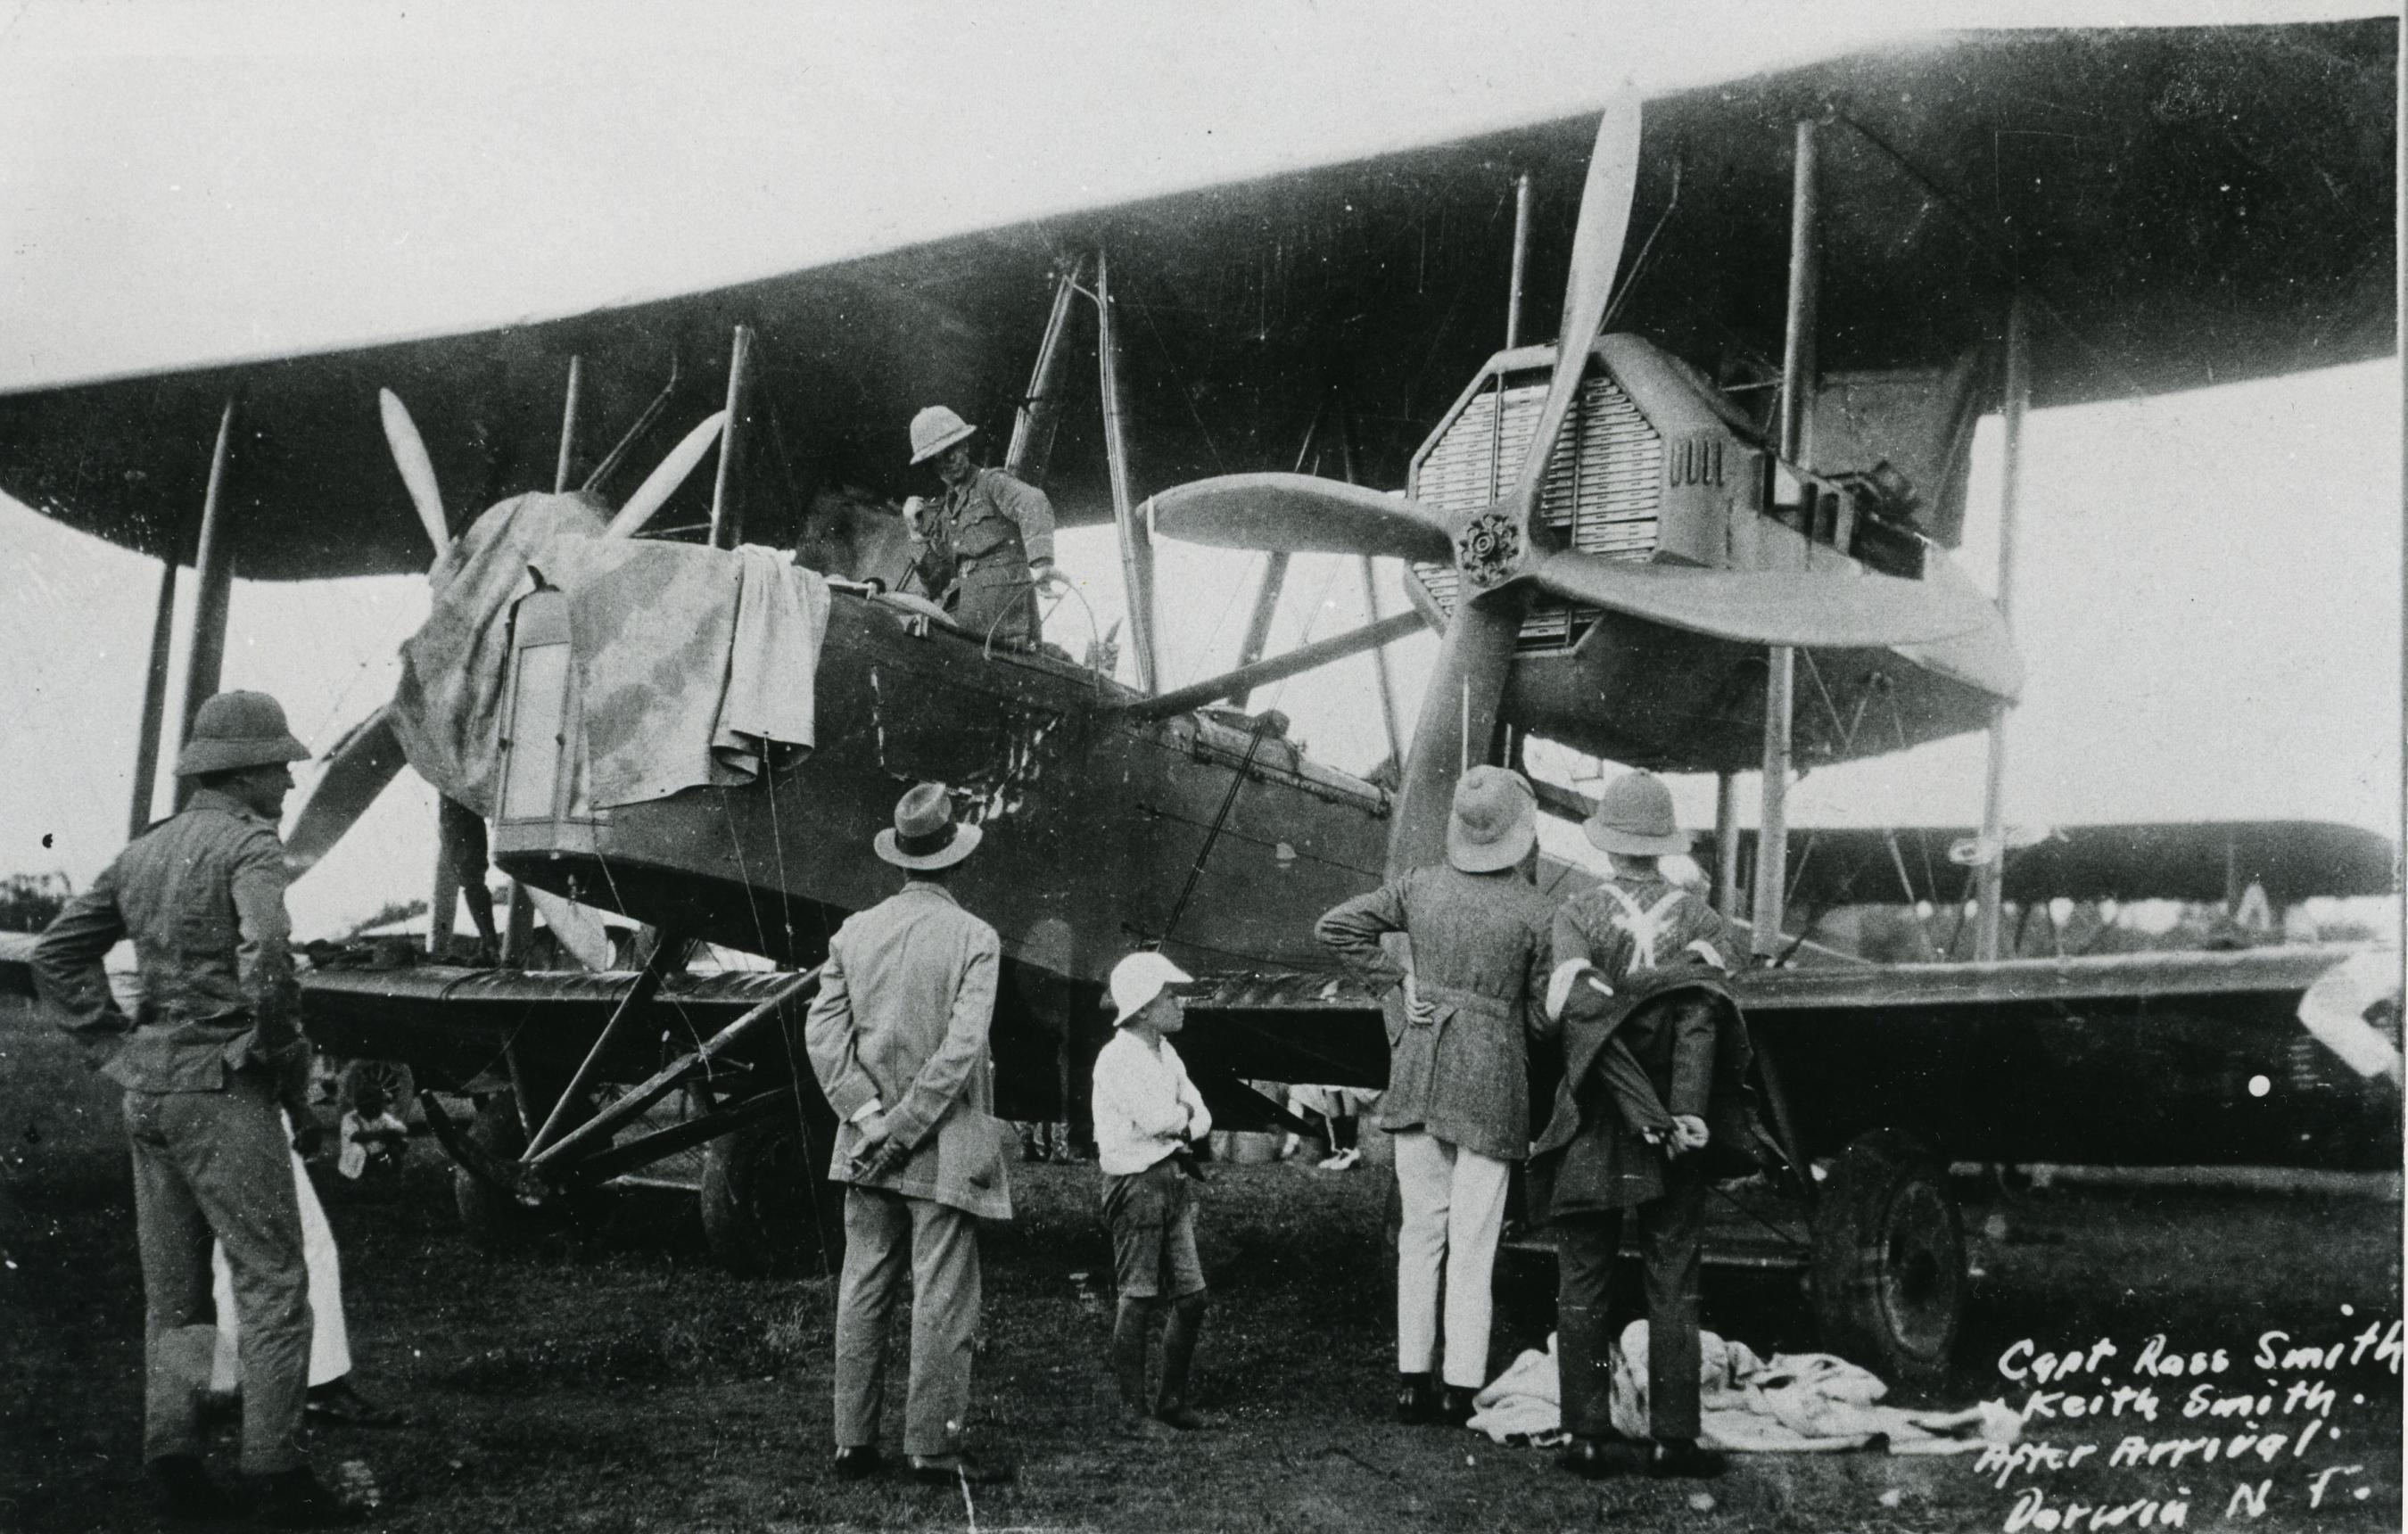 Group of people inspecting a plane on the ground